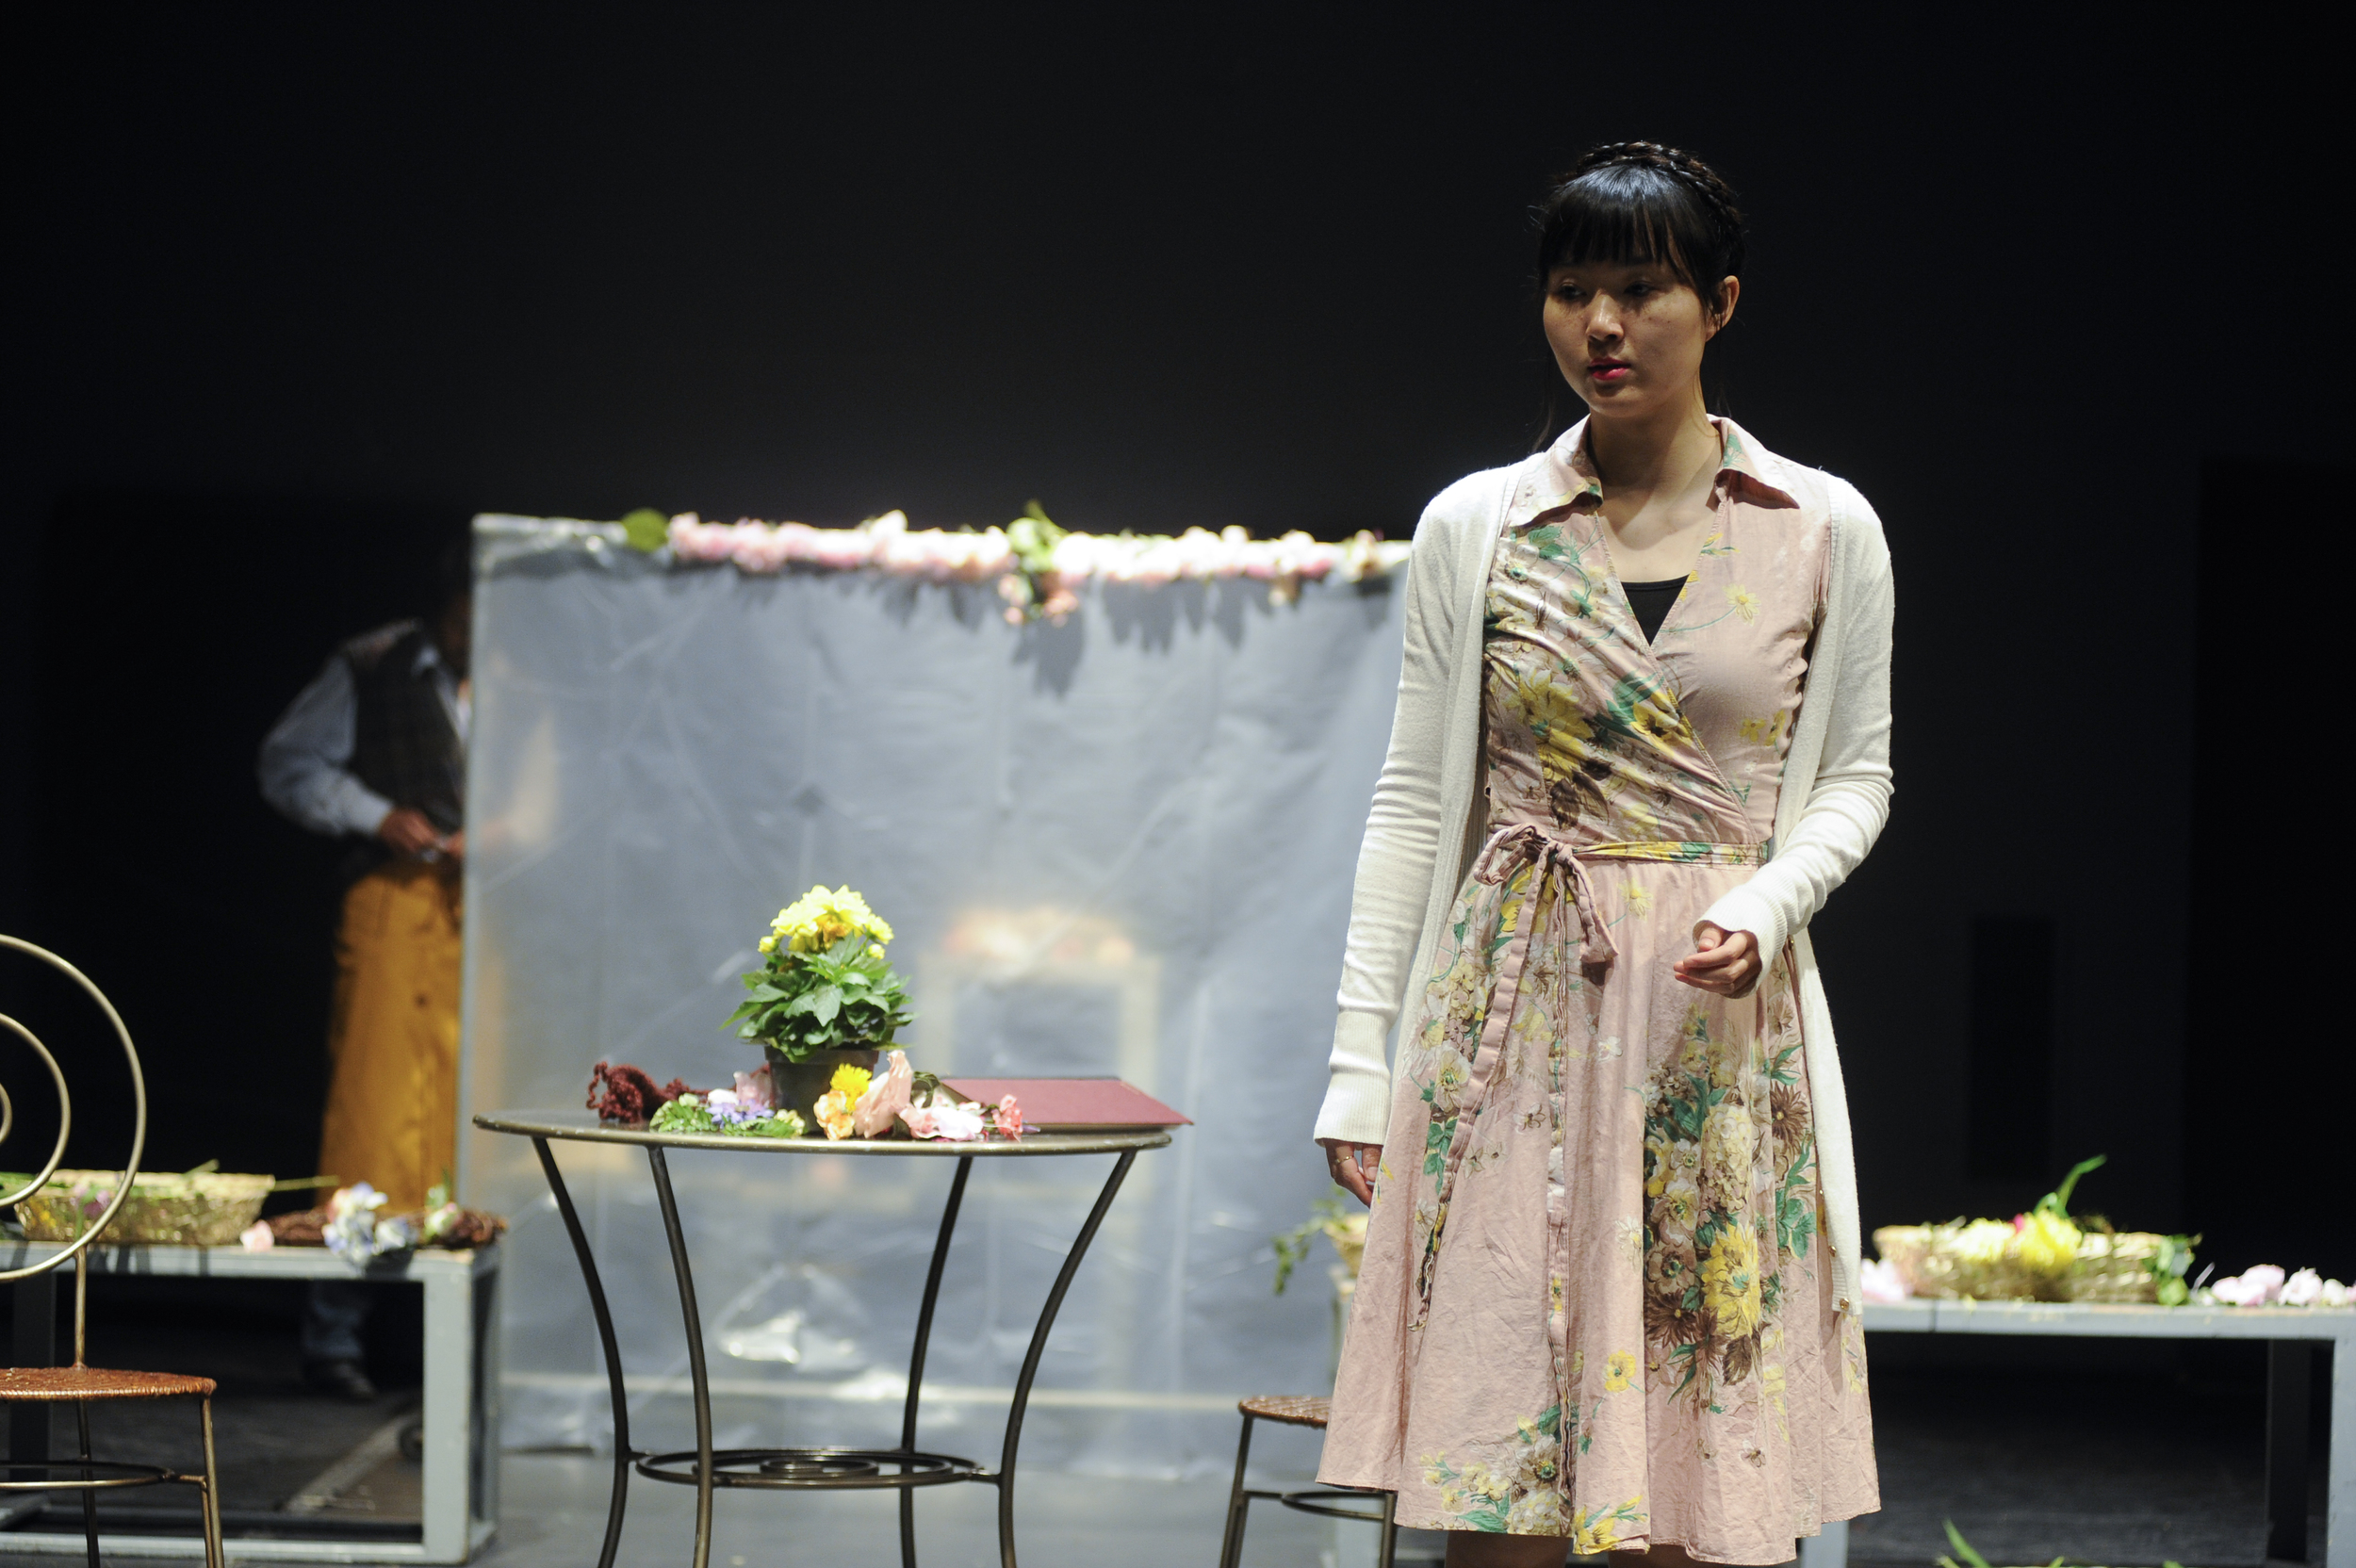 Eunyoung Bona Jung - Production Photo #4.jpg